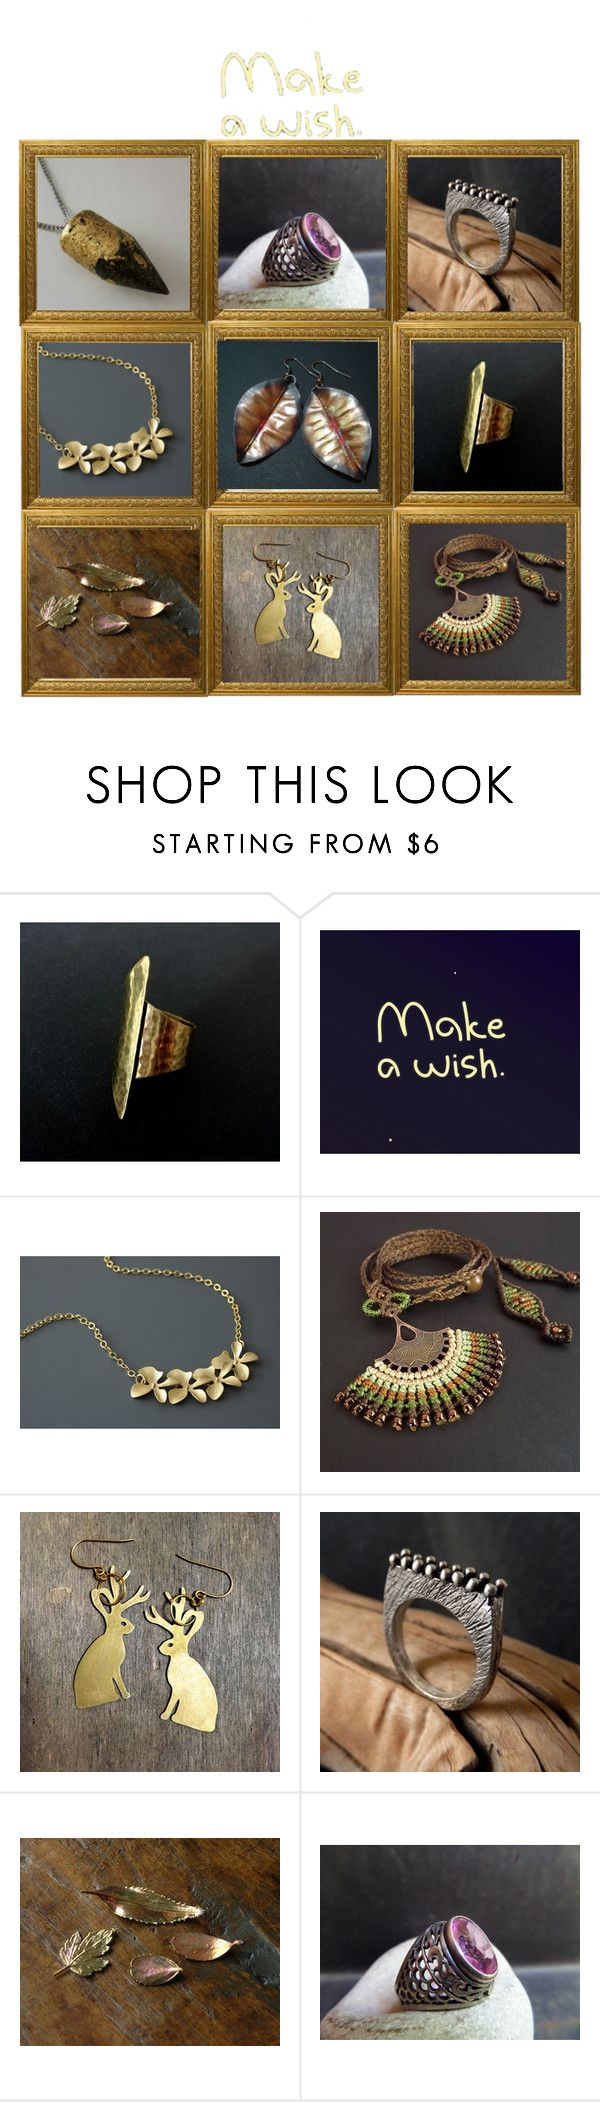 """""""Fine Jewellery"""" by anna-recycle ❤ liked on Polyvore featuring jewelry, art, fashionset, artexpression and annarecycle"""